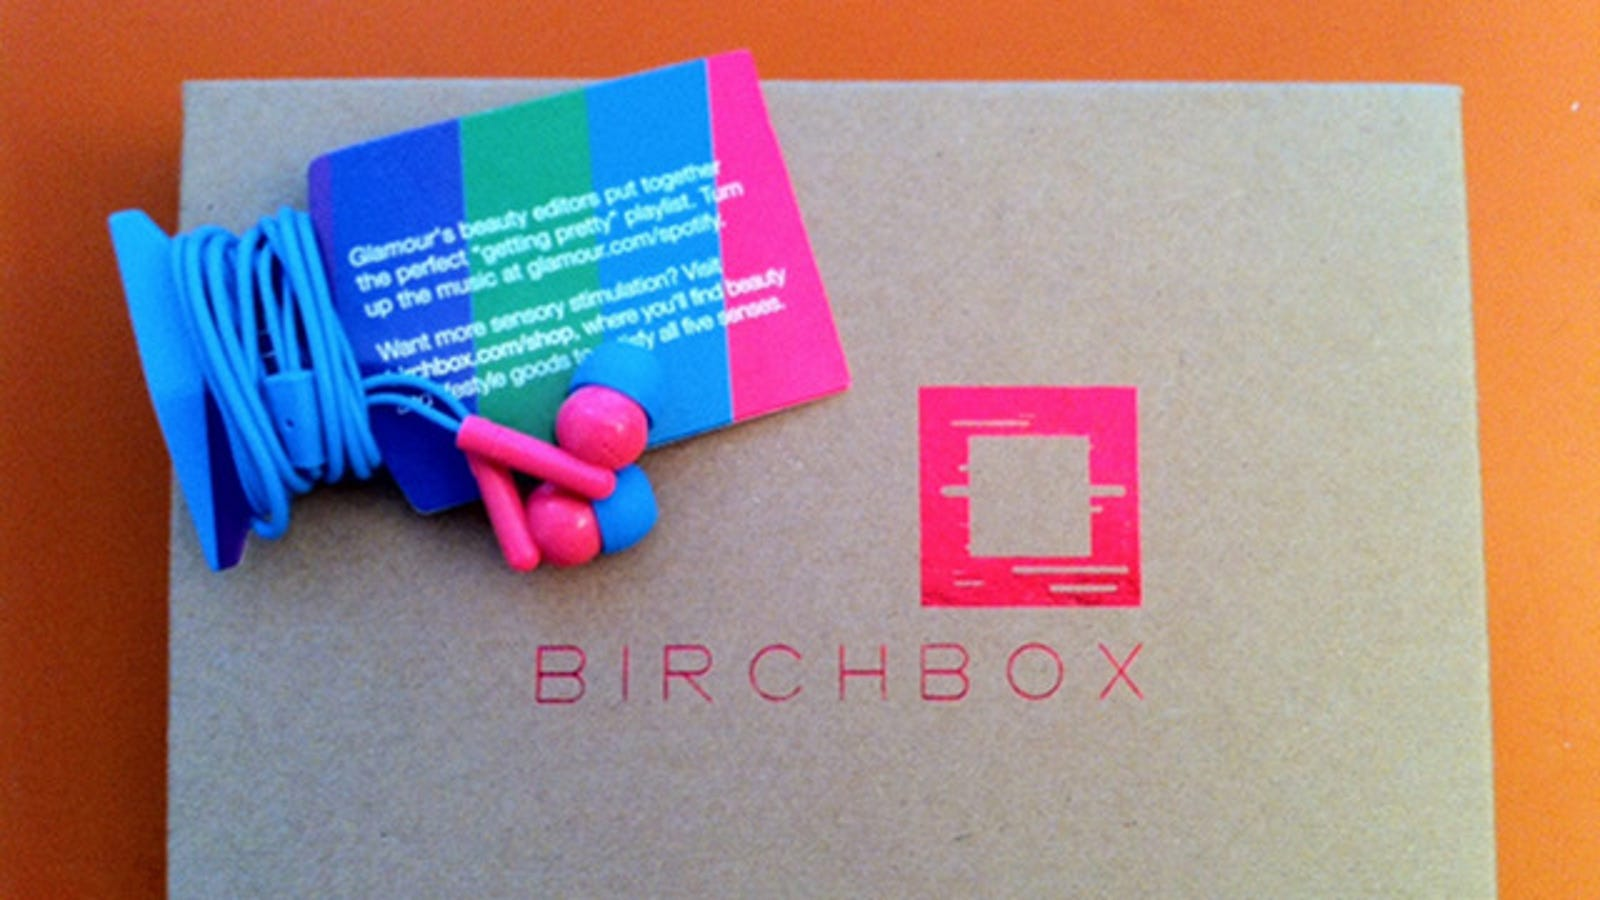 bose headphones earbuds wireless - Birchbox: At Least Those Crappy Earbuds Are Cute!